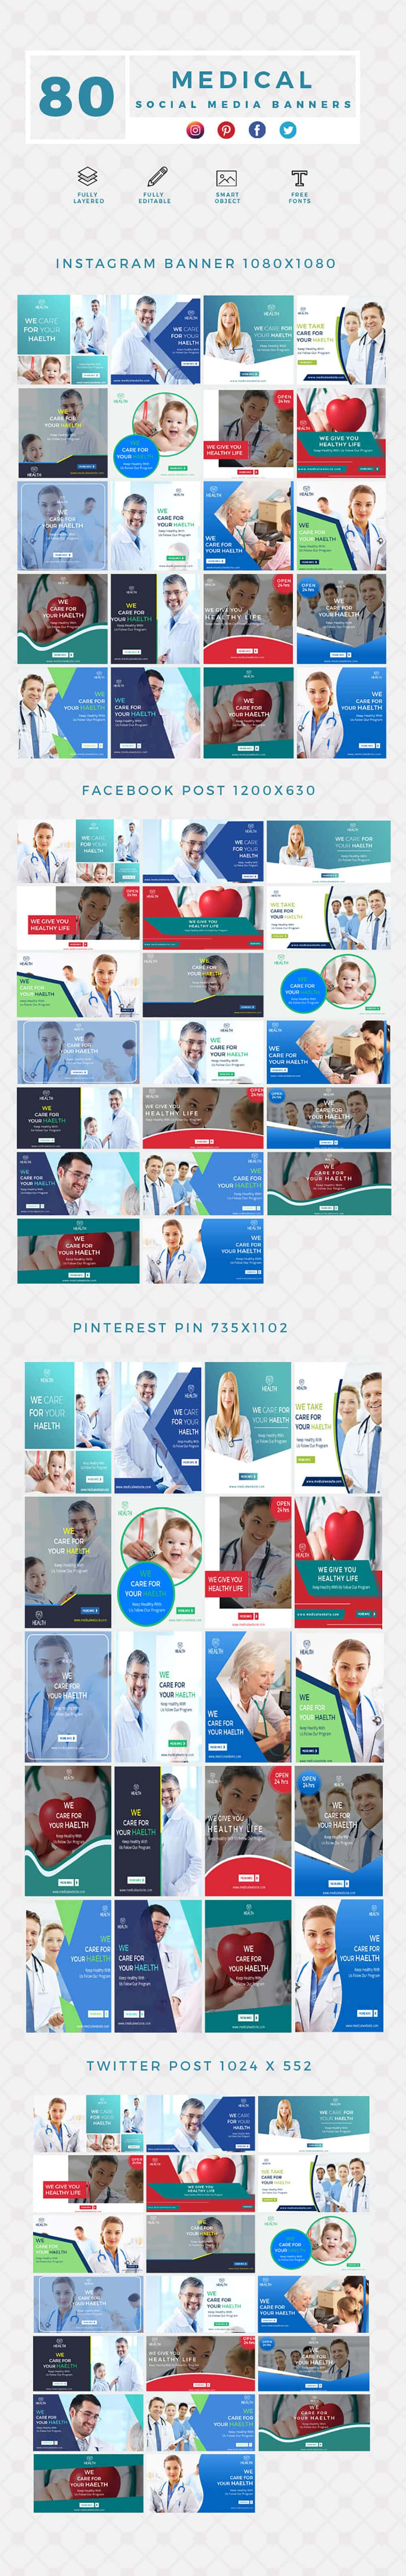 640 Templates for Facebook, Instagram, Twitter, Pinterest - $15 - PREVIEW MEDICAL min